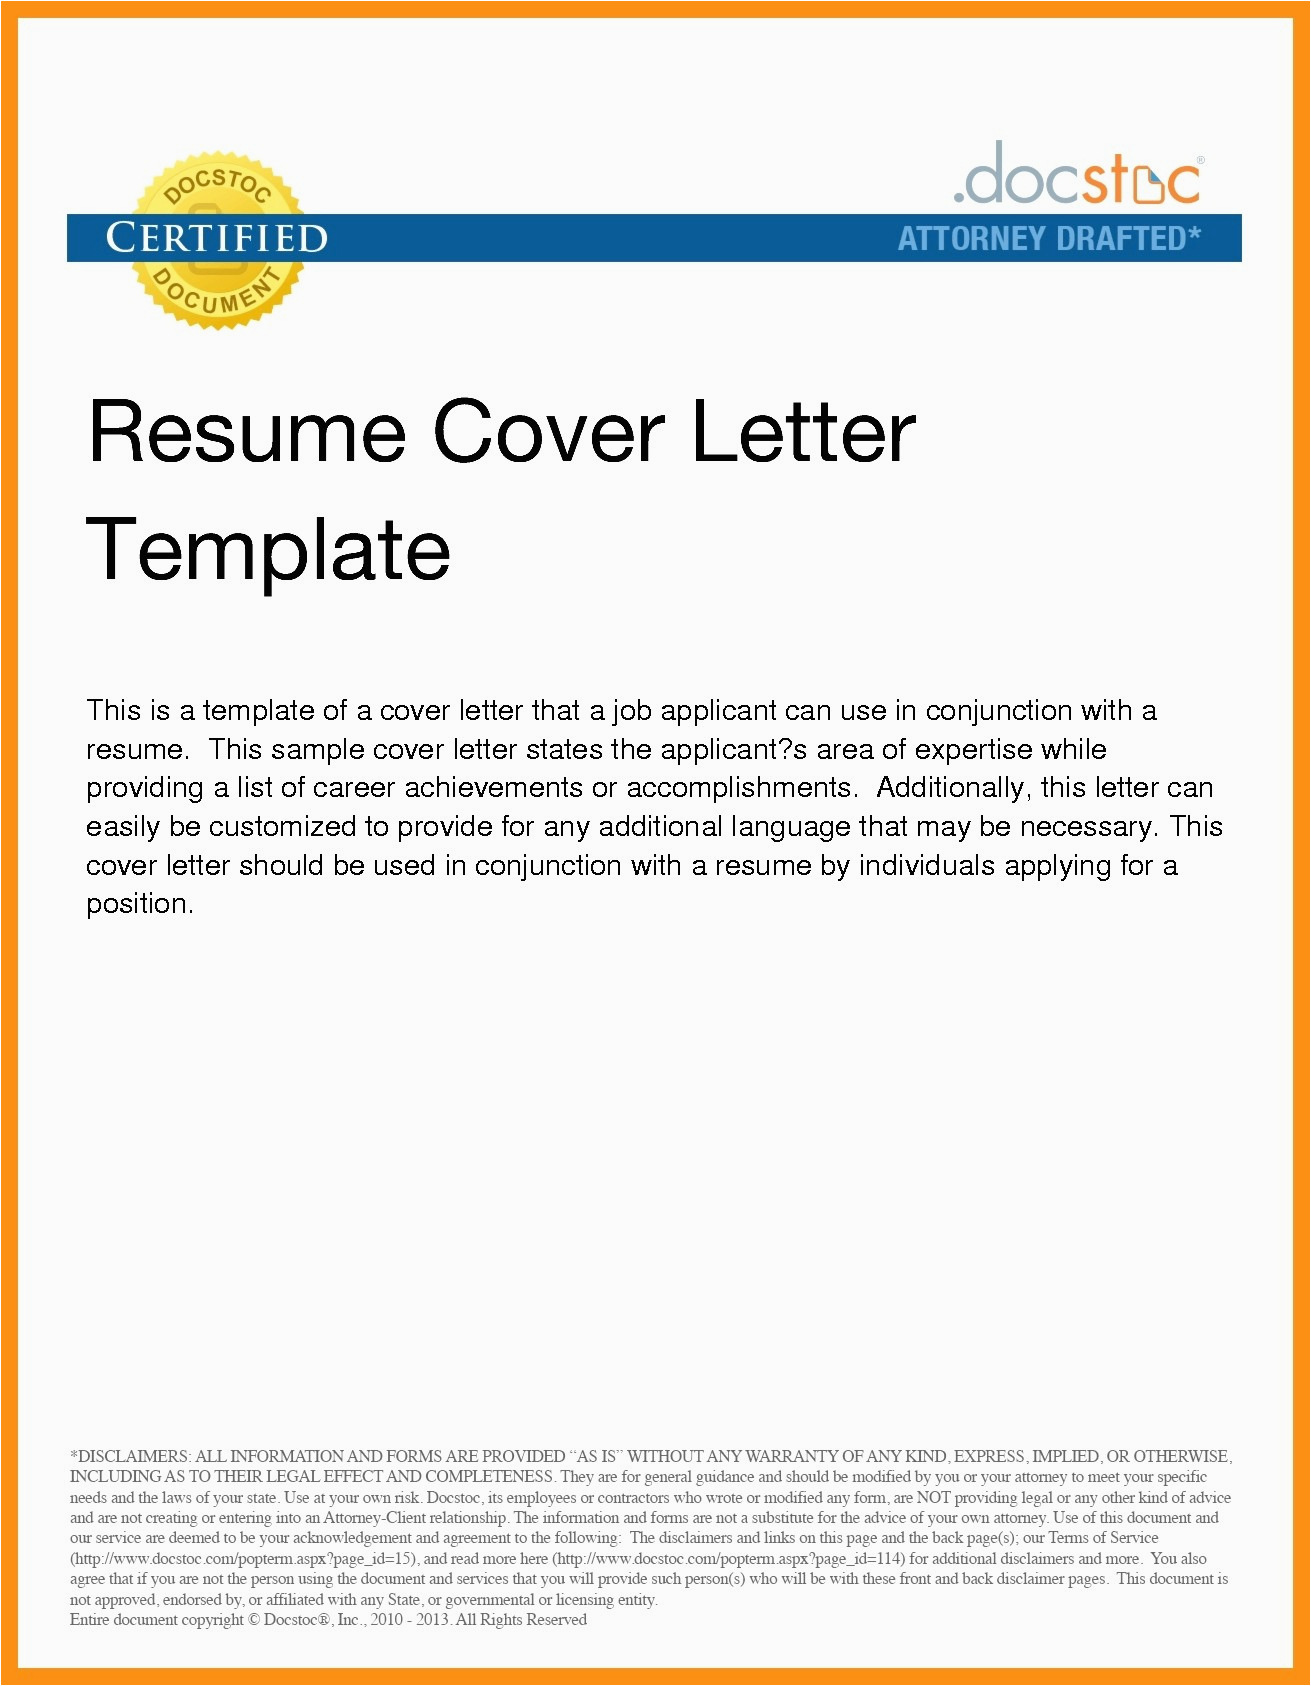 Sample Email Message for Sending Resume Sending Resume and Cover Letter by Email Collection